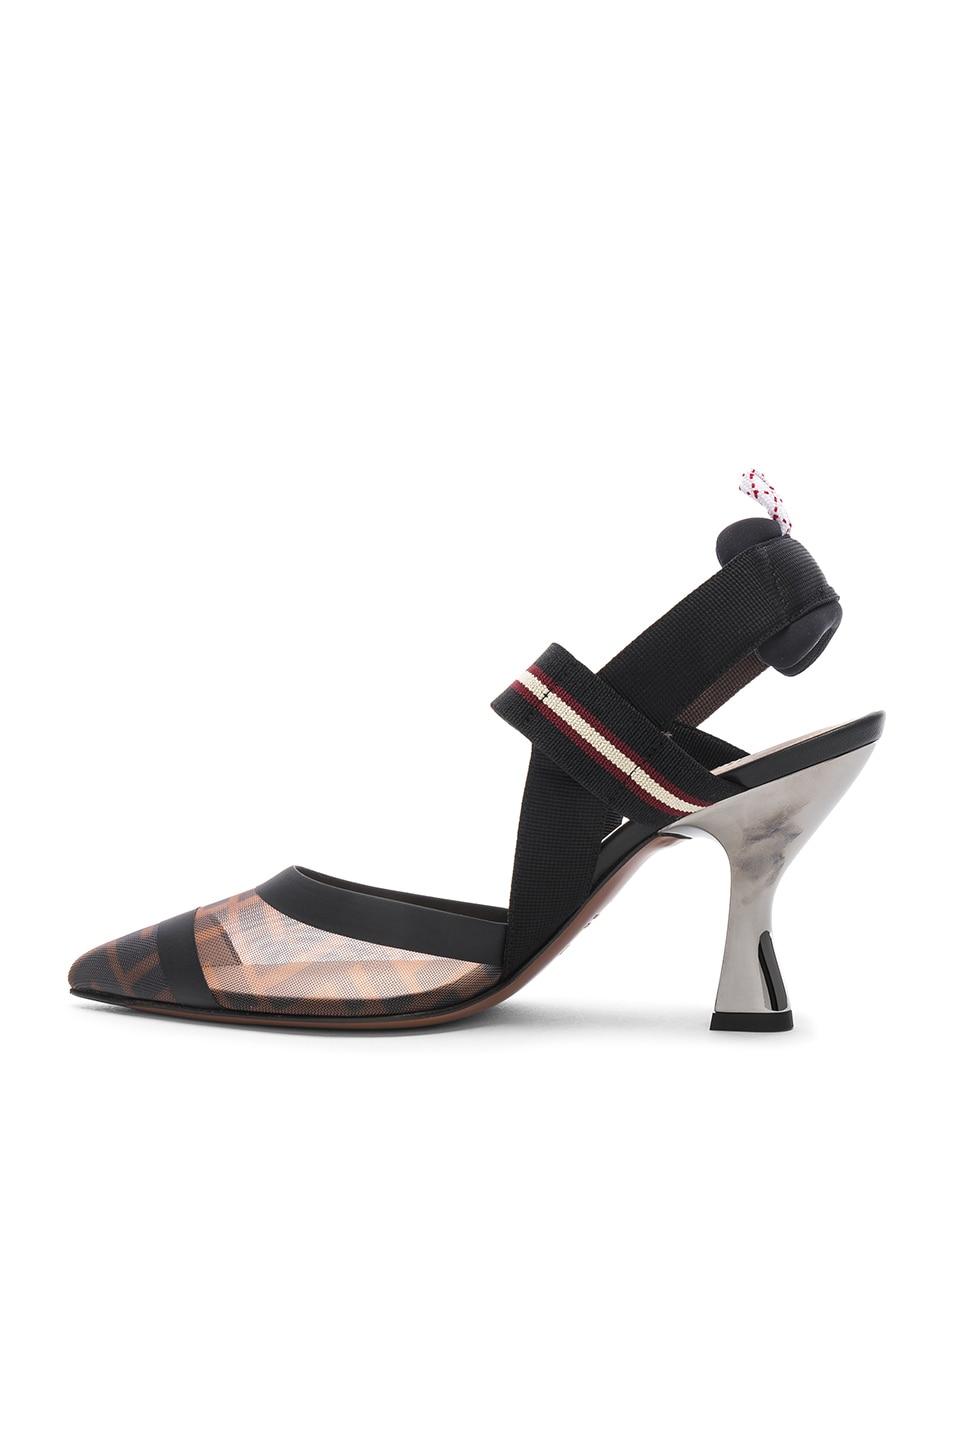 Image 5 of Fendi Colibri Slingback Heels in Black